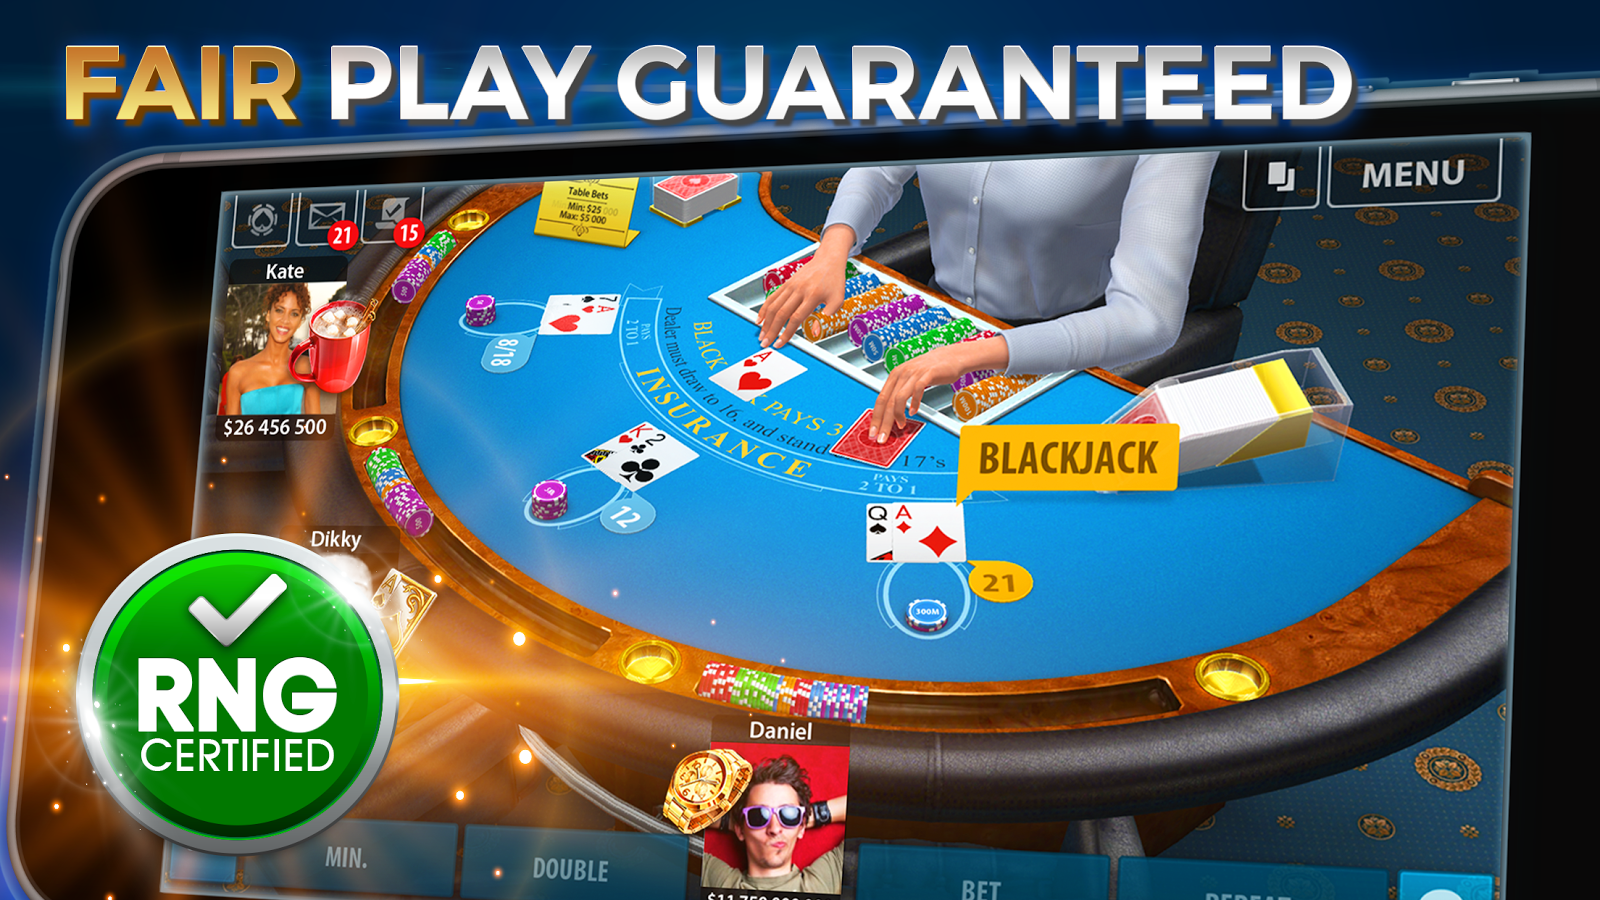 Blackjack rules 2 player